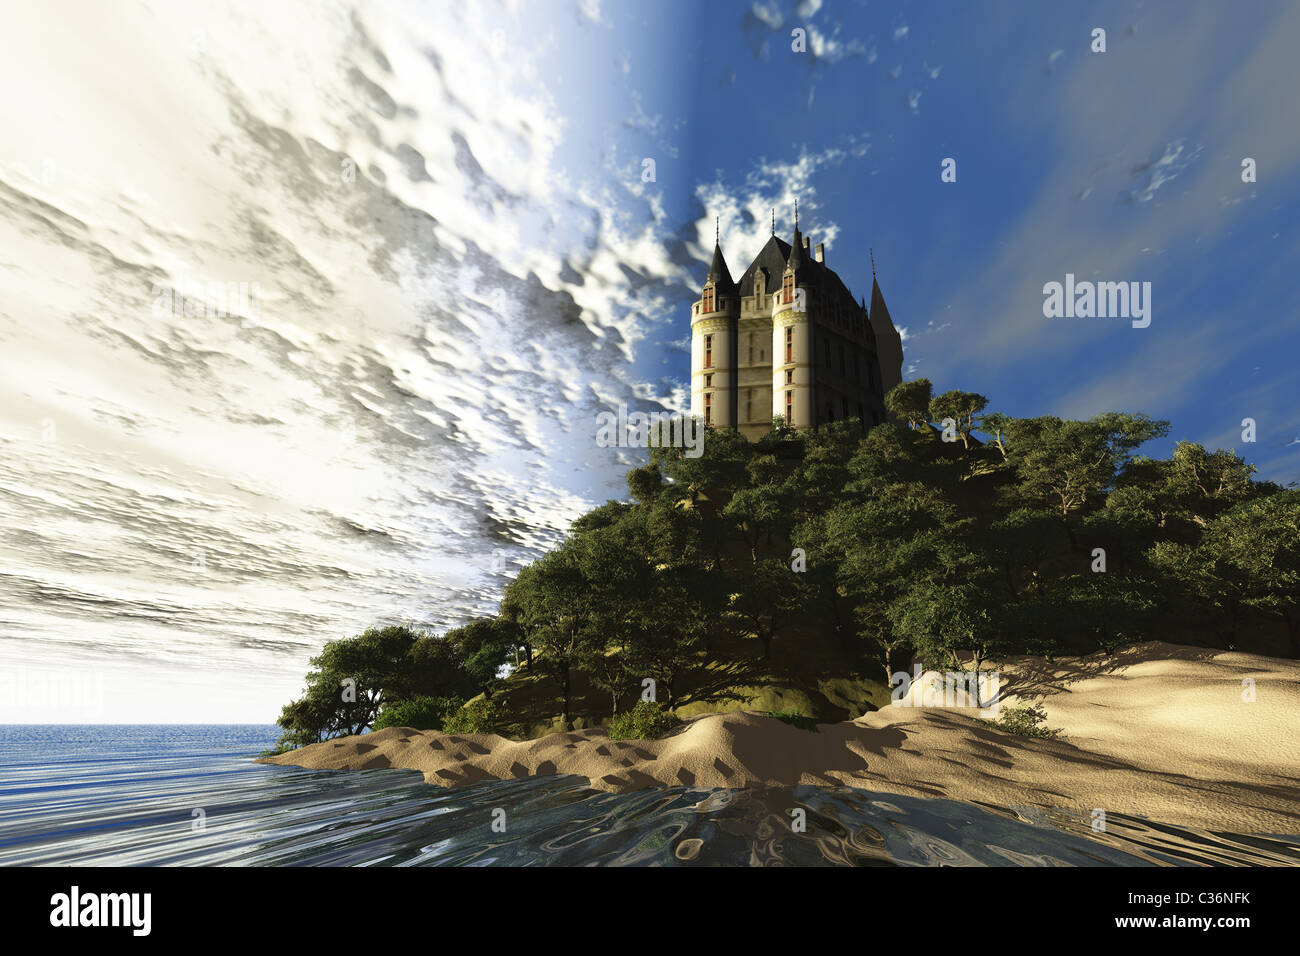 A beautiful castle sits majestically on a hill overlooking the ocean. - Stock Image